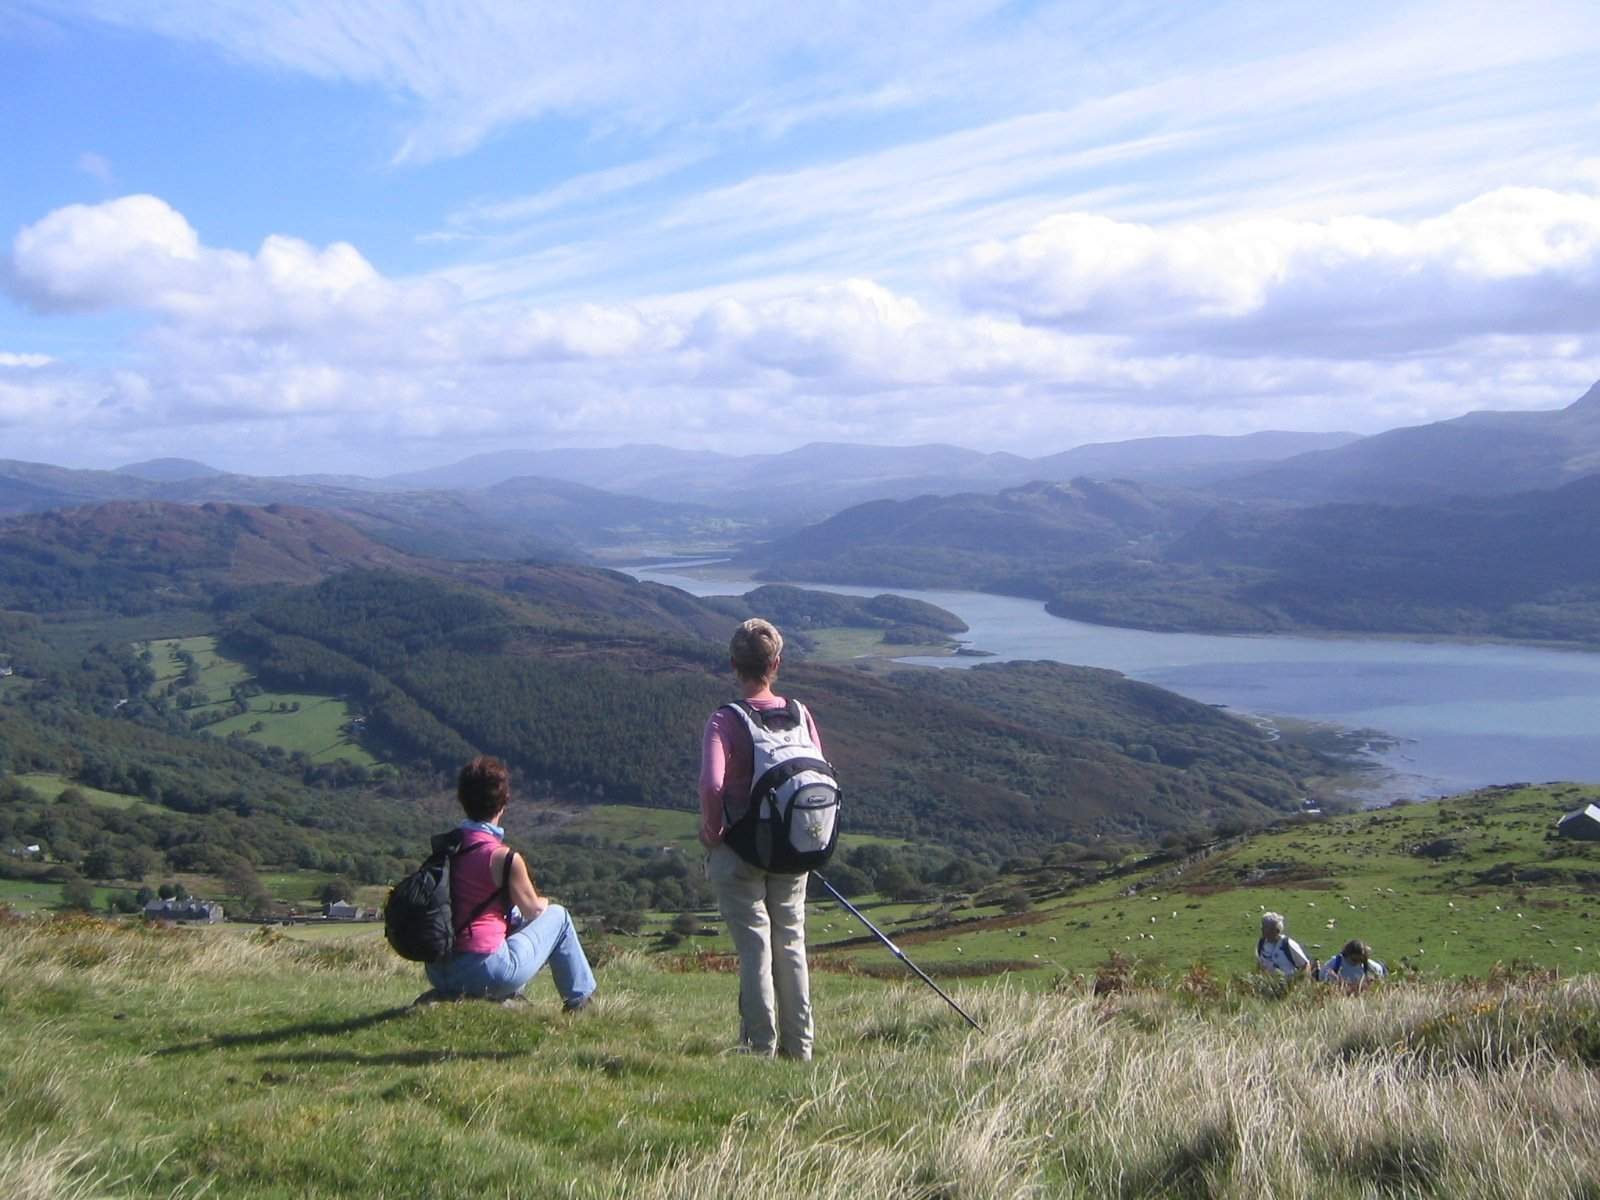 2 women over mawddach